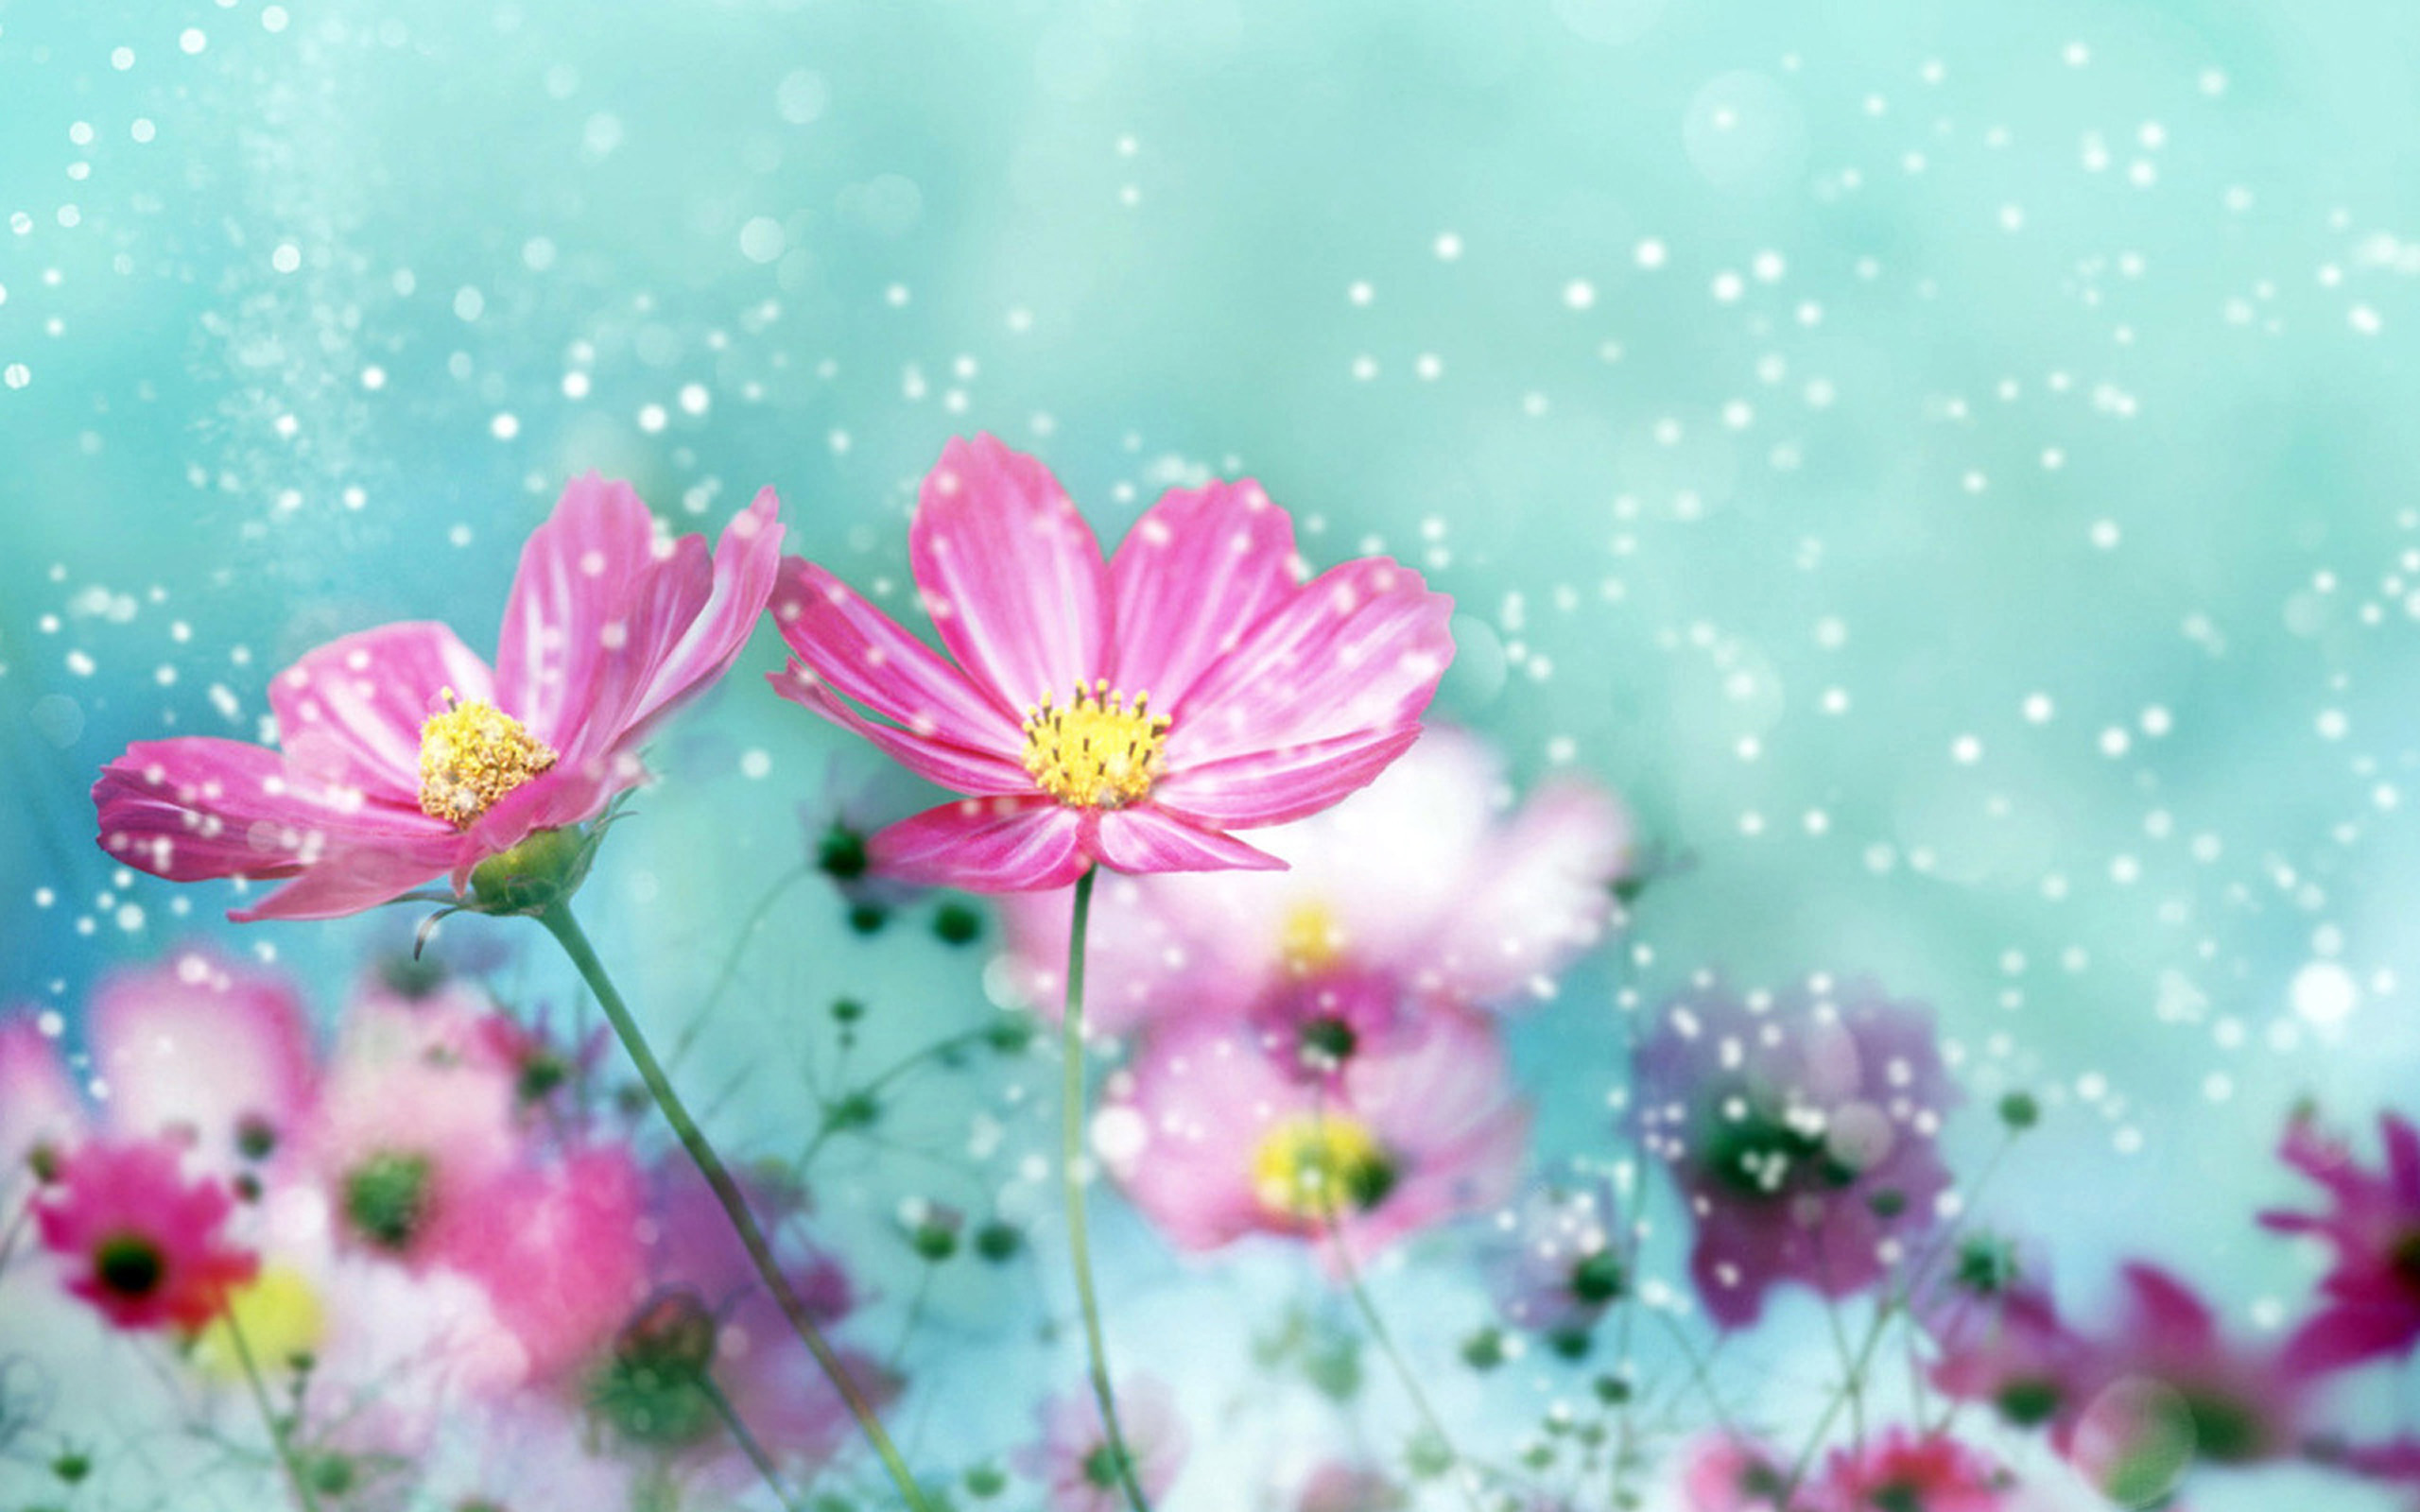 Beautiful Flower Wallpaper For Desktop Download To Make Your 2560x1600